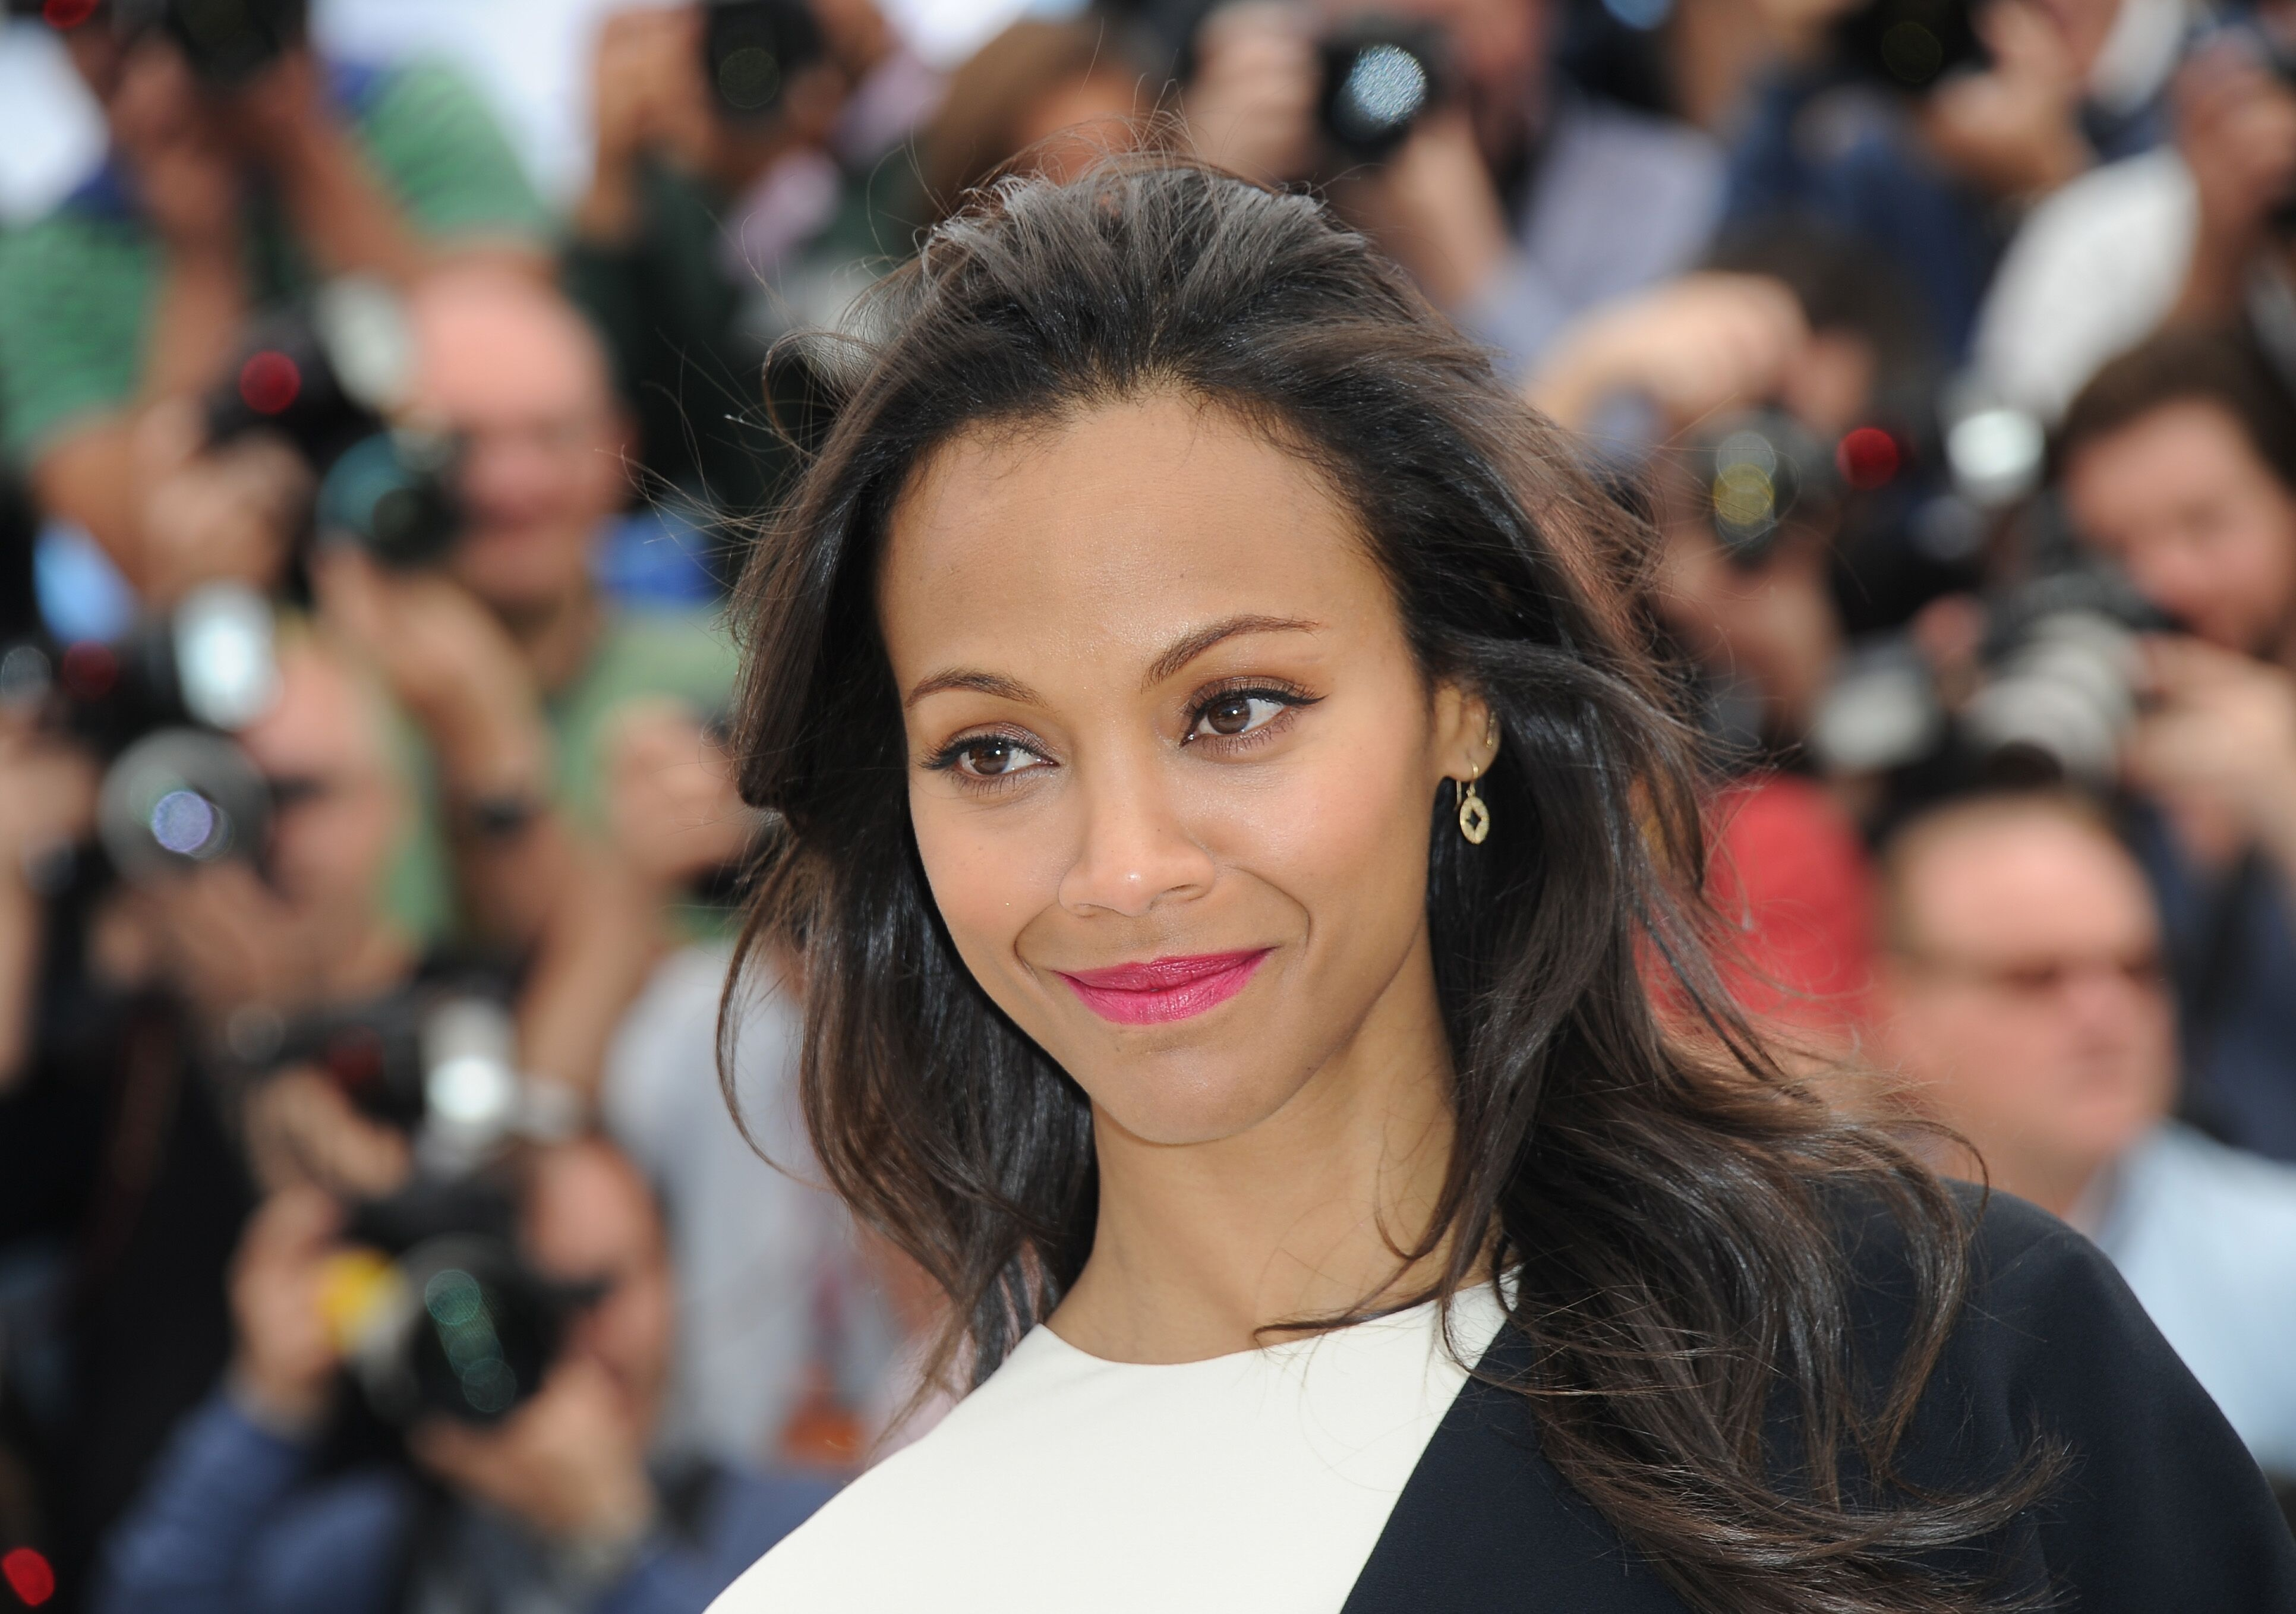 Zoe Saldana attends the photocall for 'Blood Ties' at The 66th Annual Cannes Film Festival on May 20, 2013 in Cannes, France | Photo: Getty Images